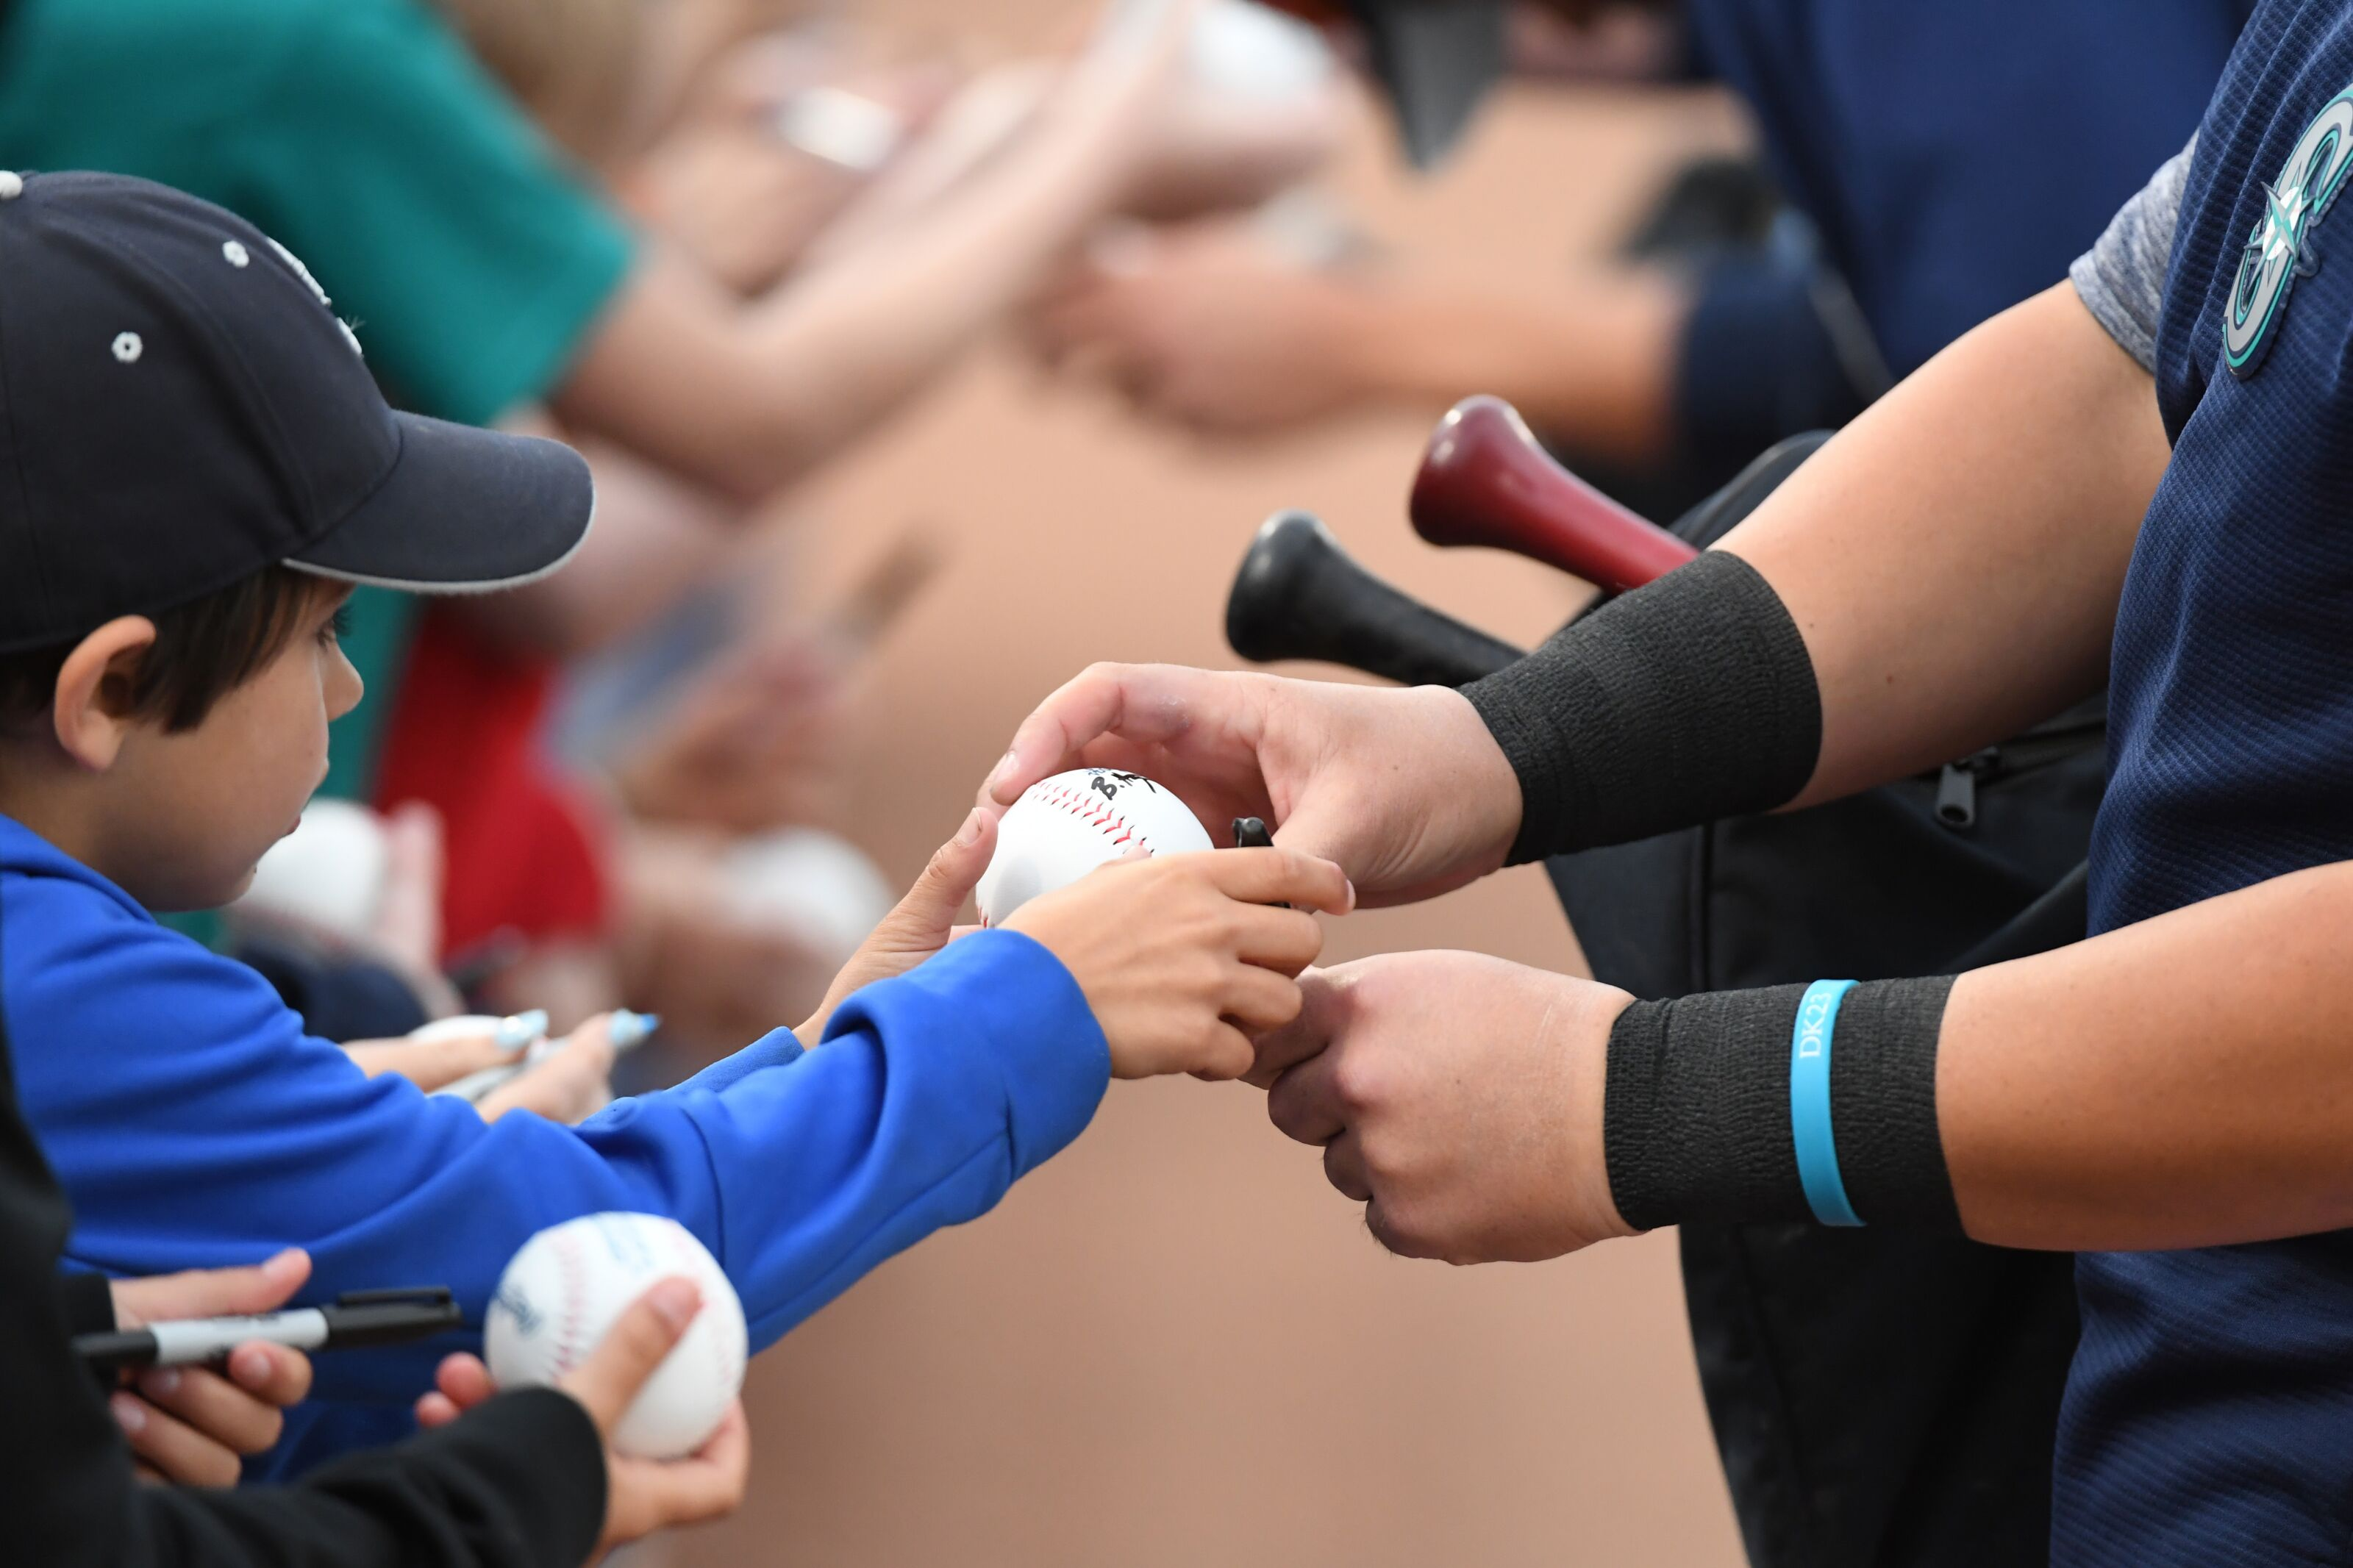 Seattle Mariners Spring Training, important dates to remember